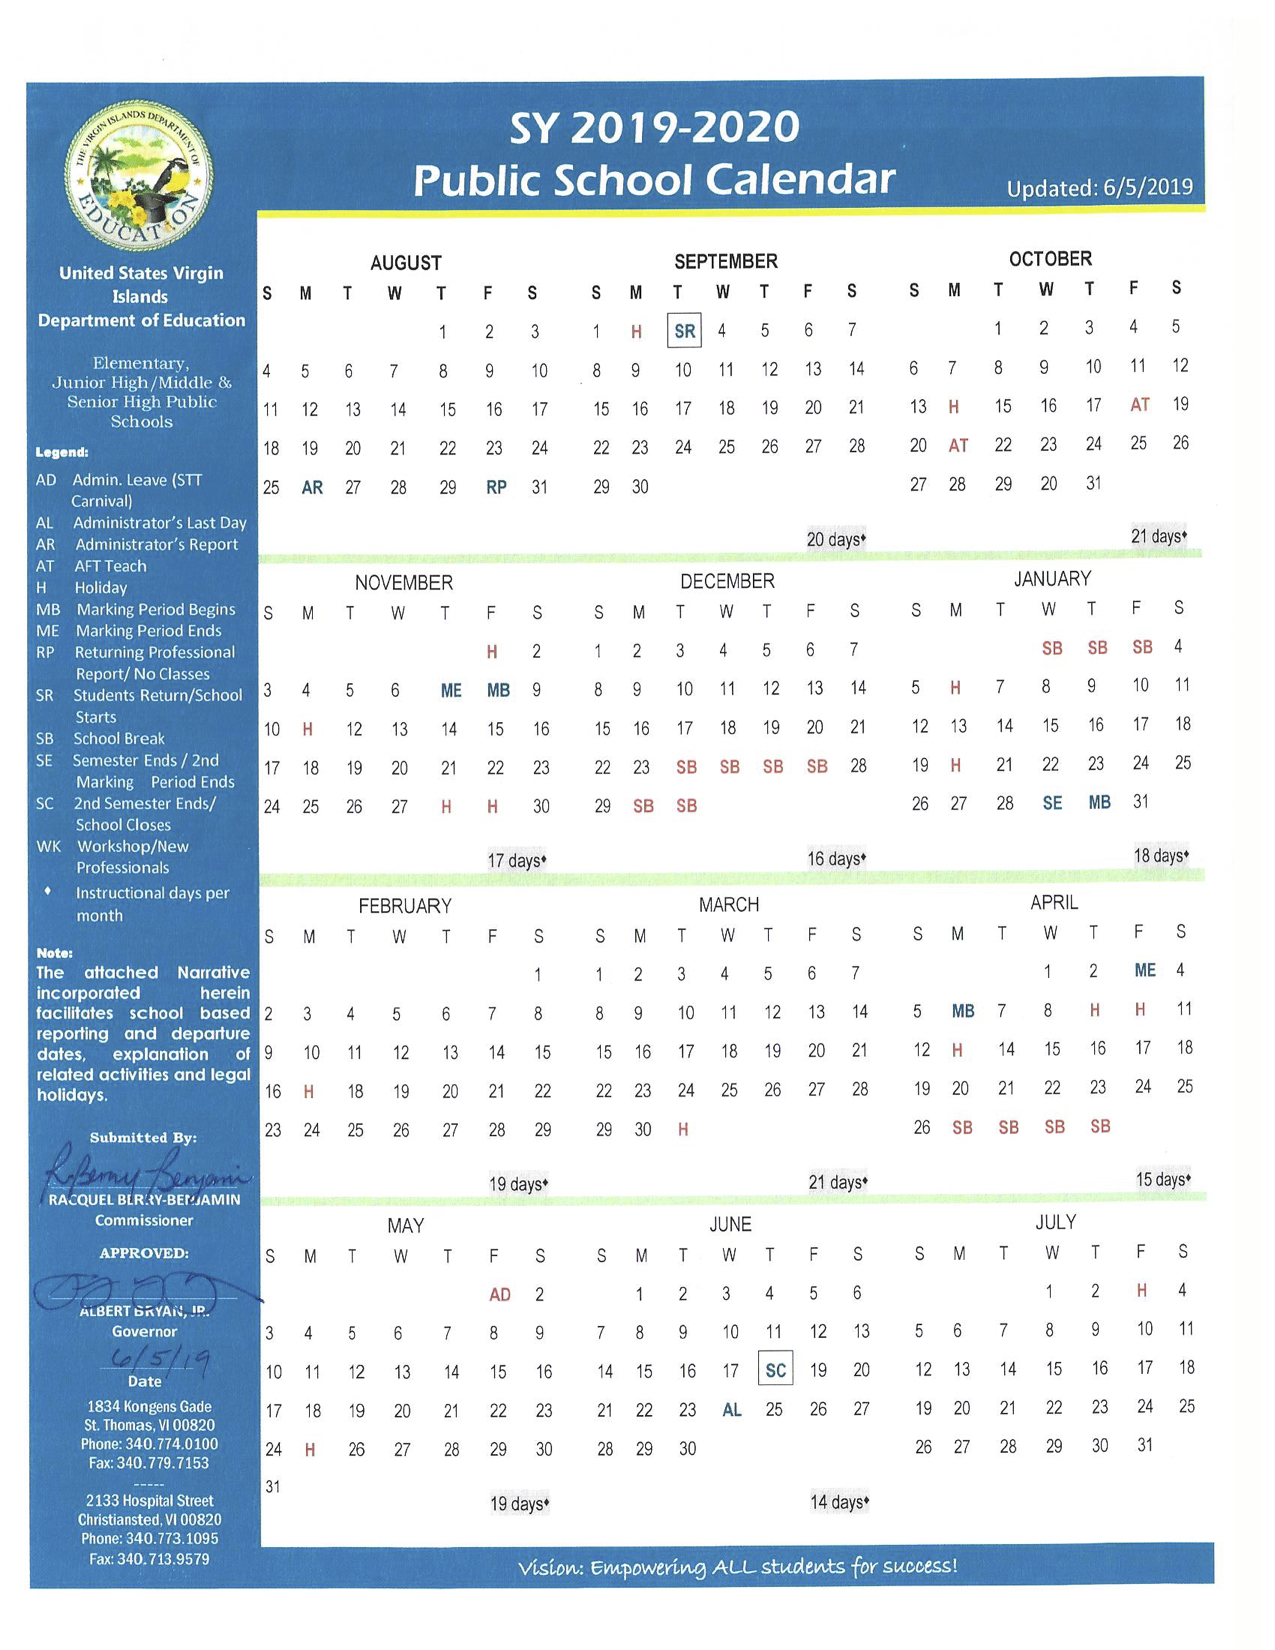 19-20 School Calendar_Updated 06052019.jpg